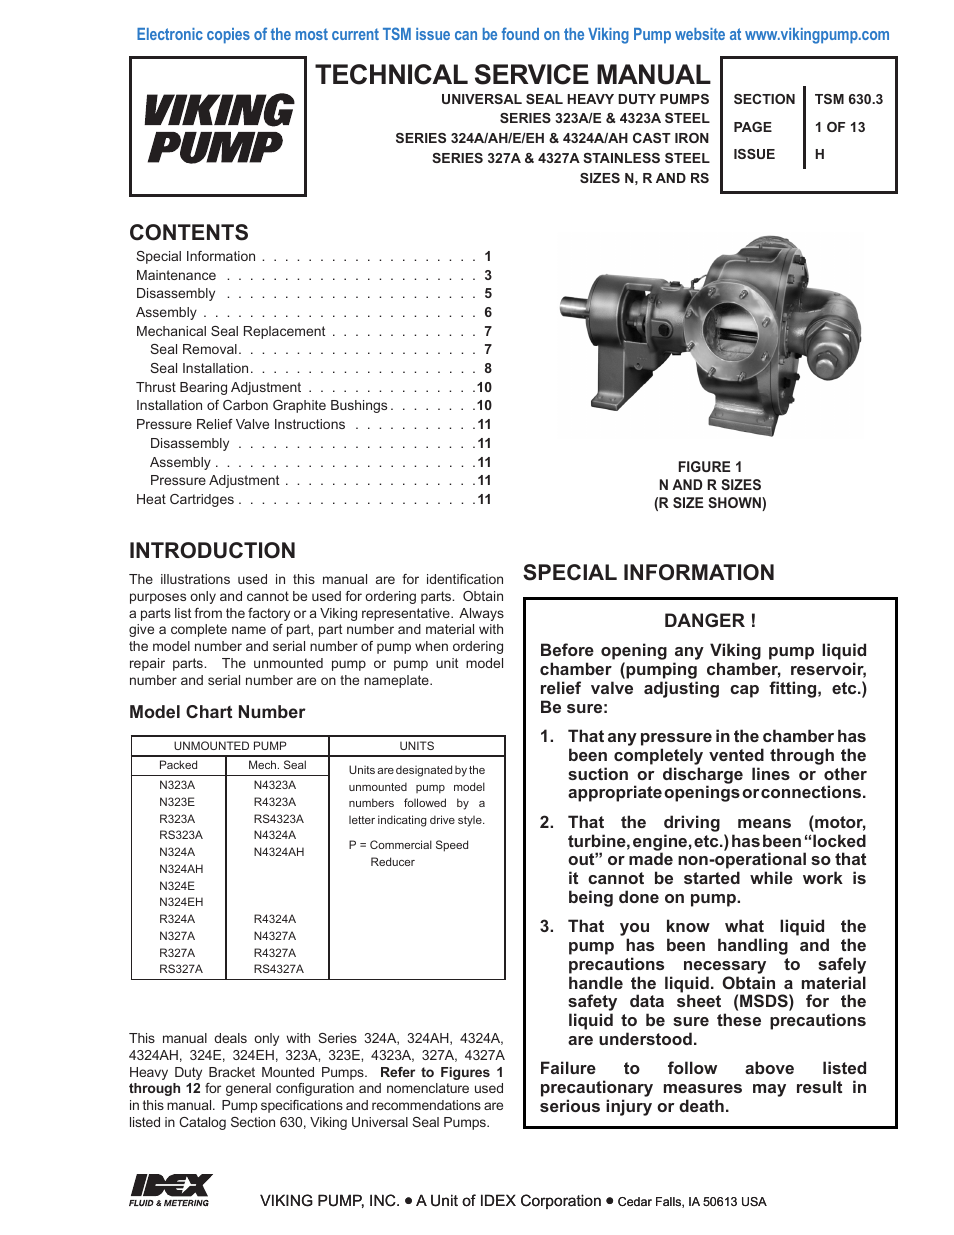 Viking Pump TSM630 3: N-RS Universal Seal User Manual | 13 pages